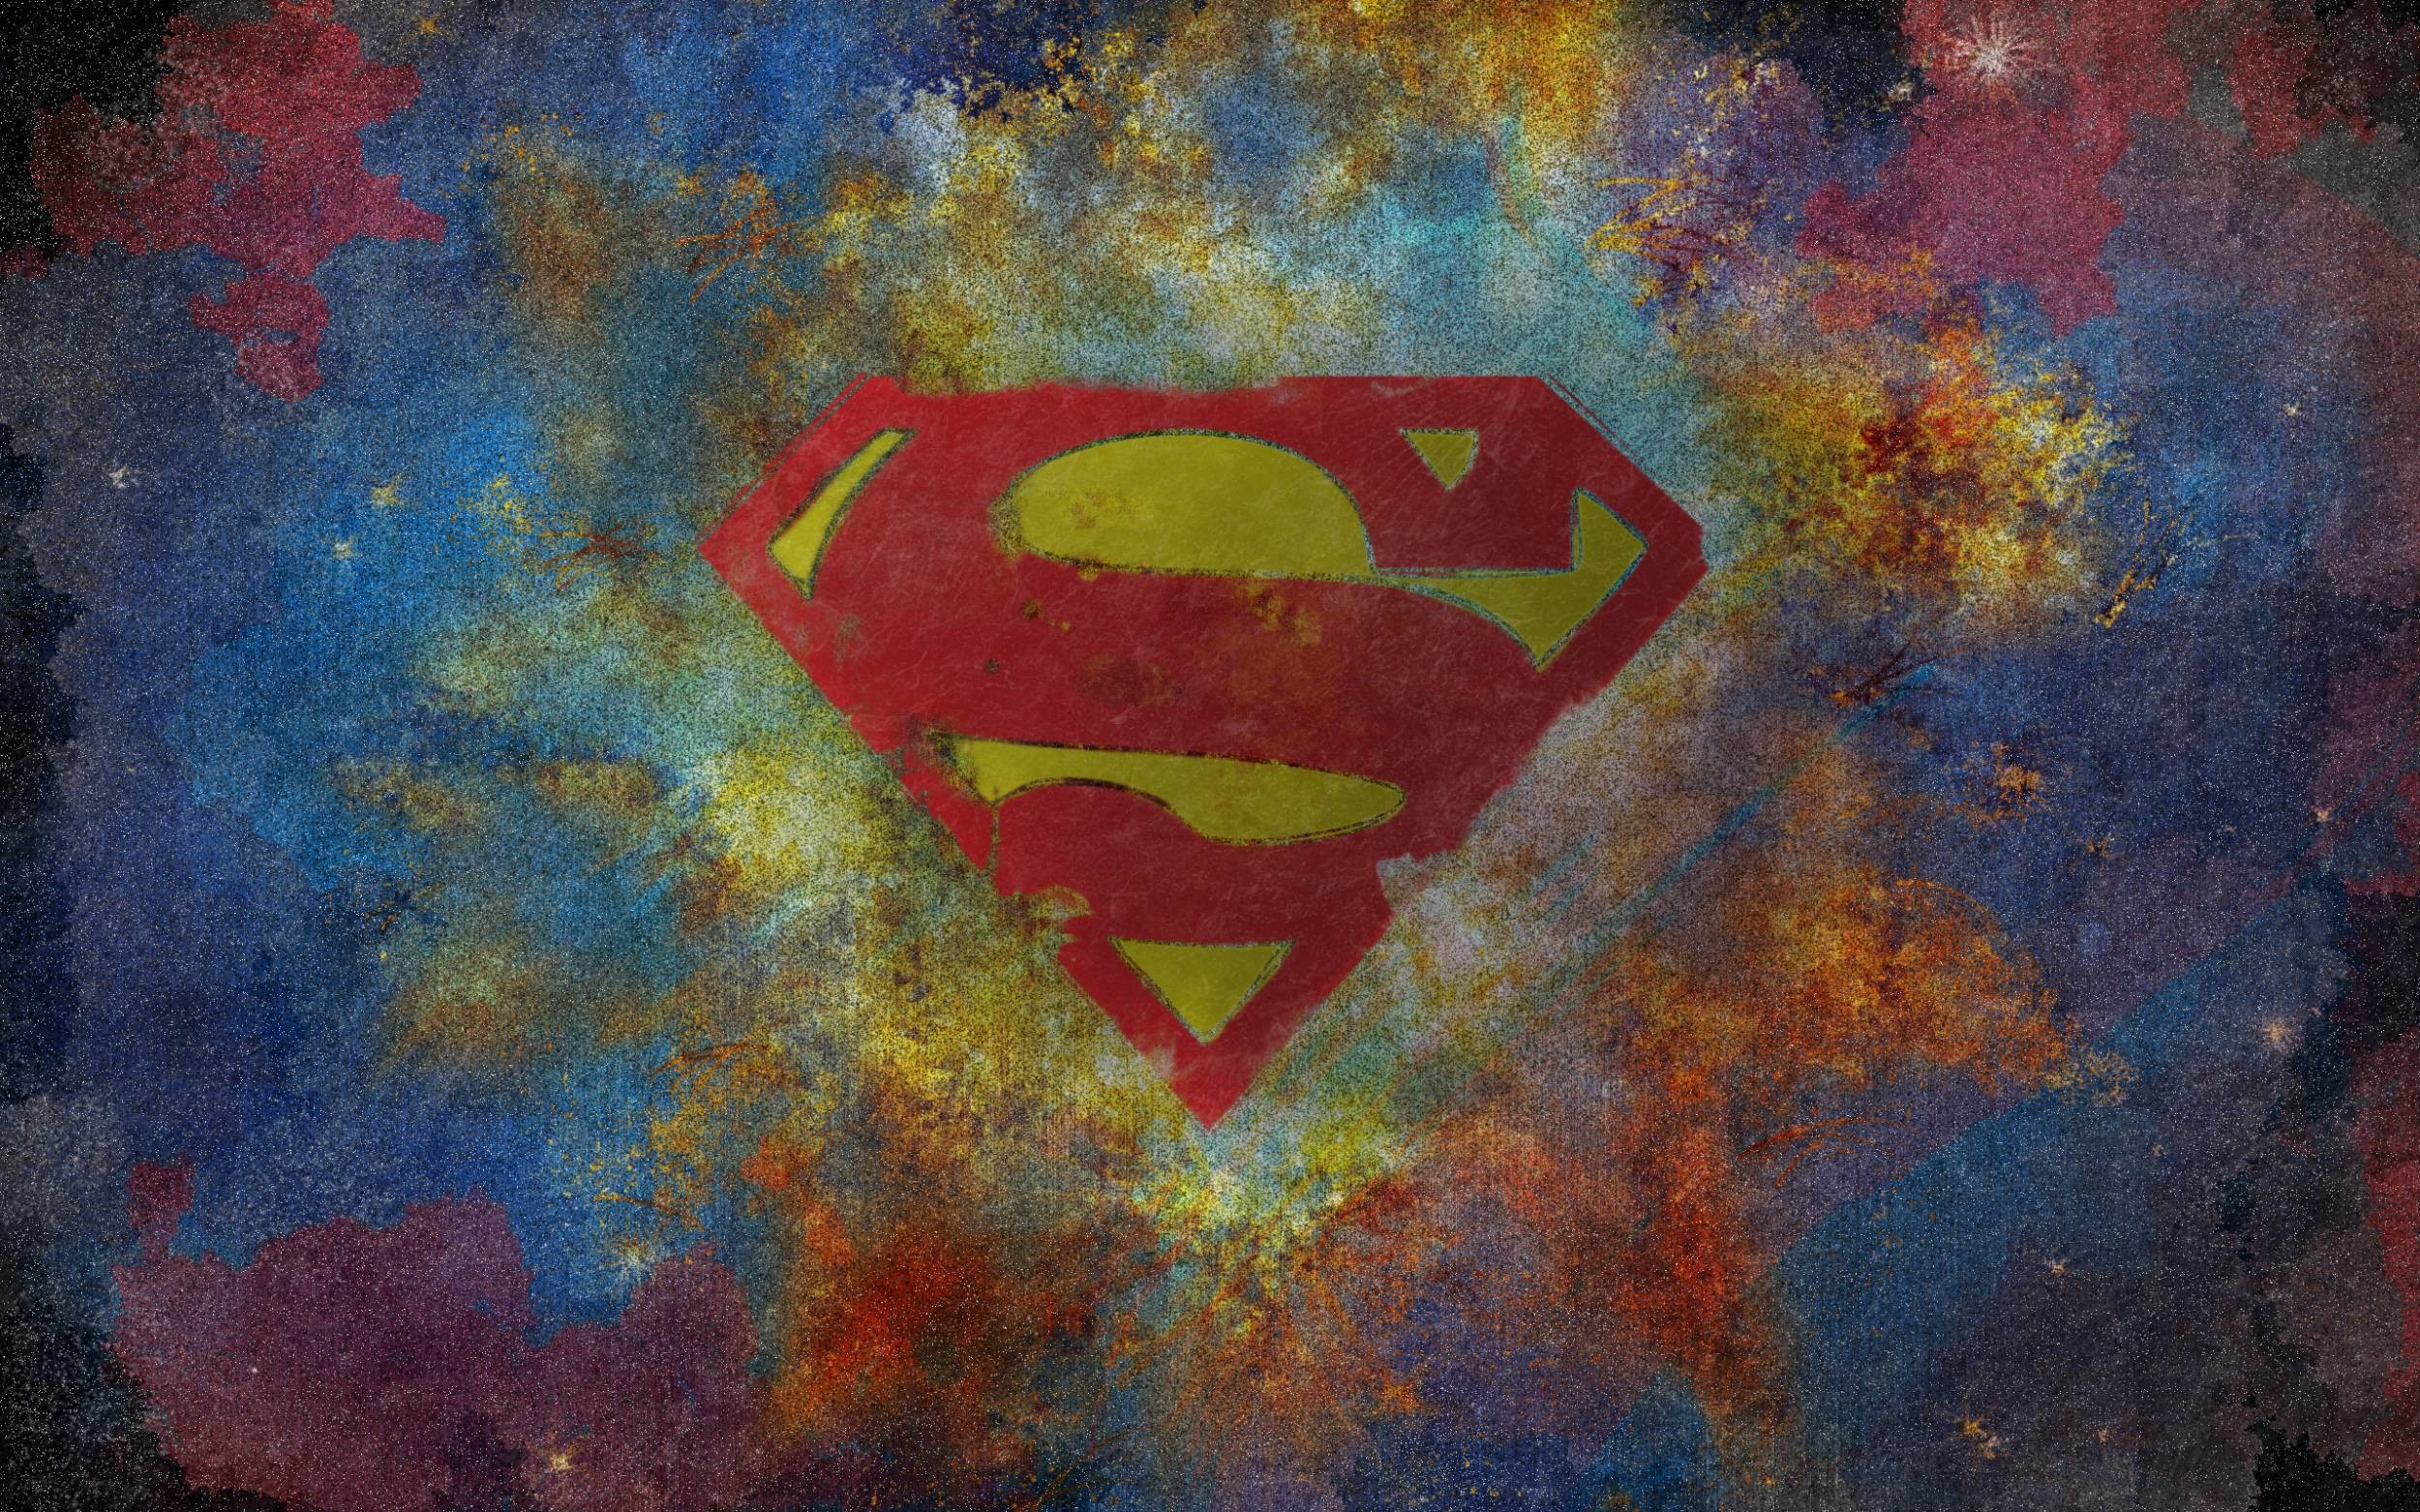 2500x1562 Superman Wallpaper Desktop – download free